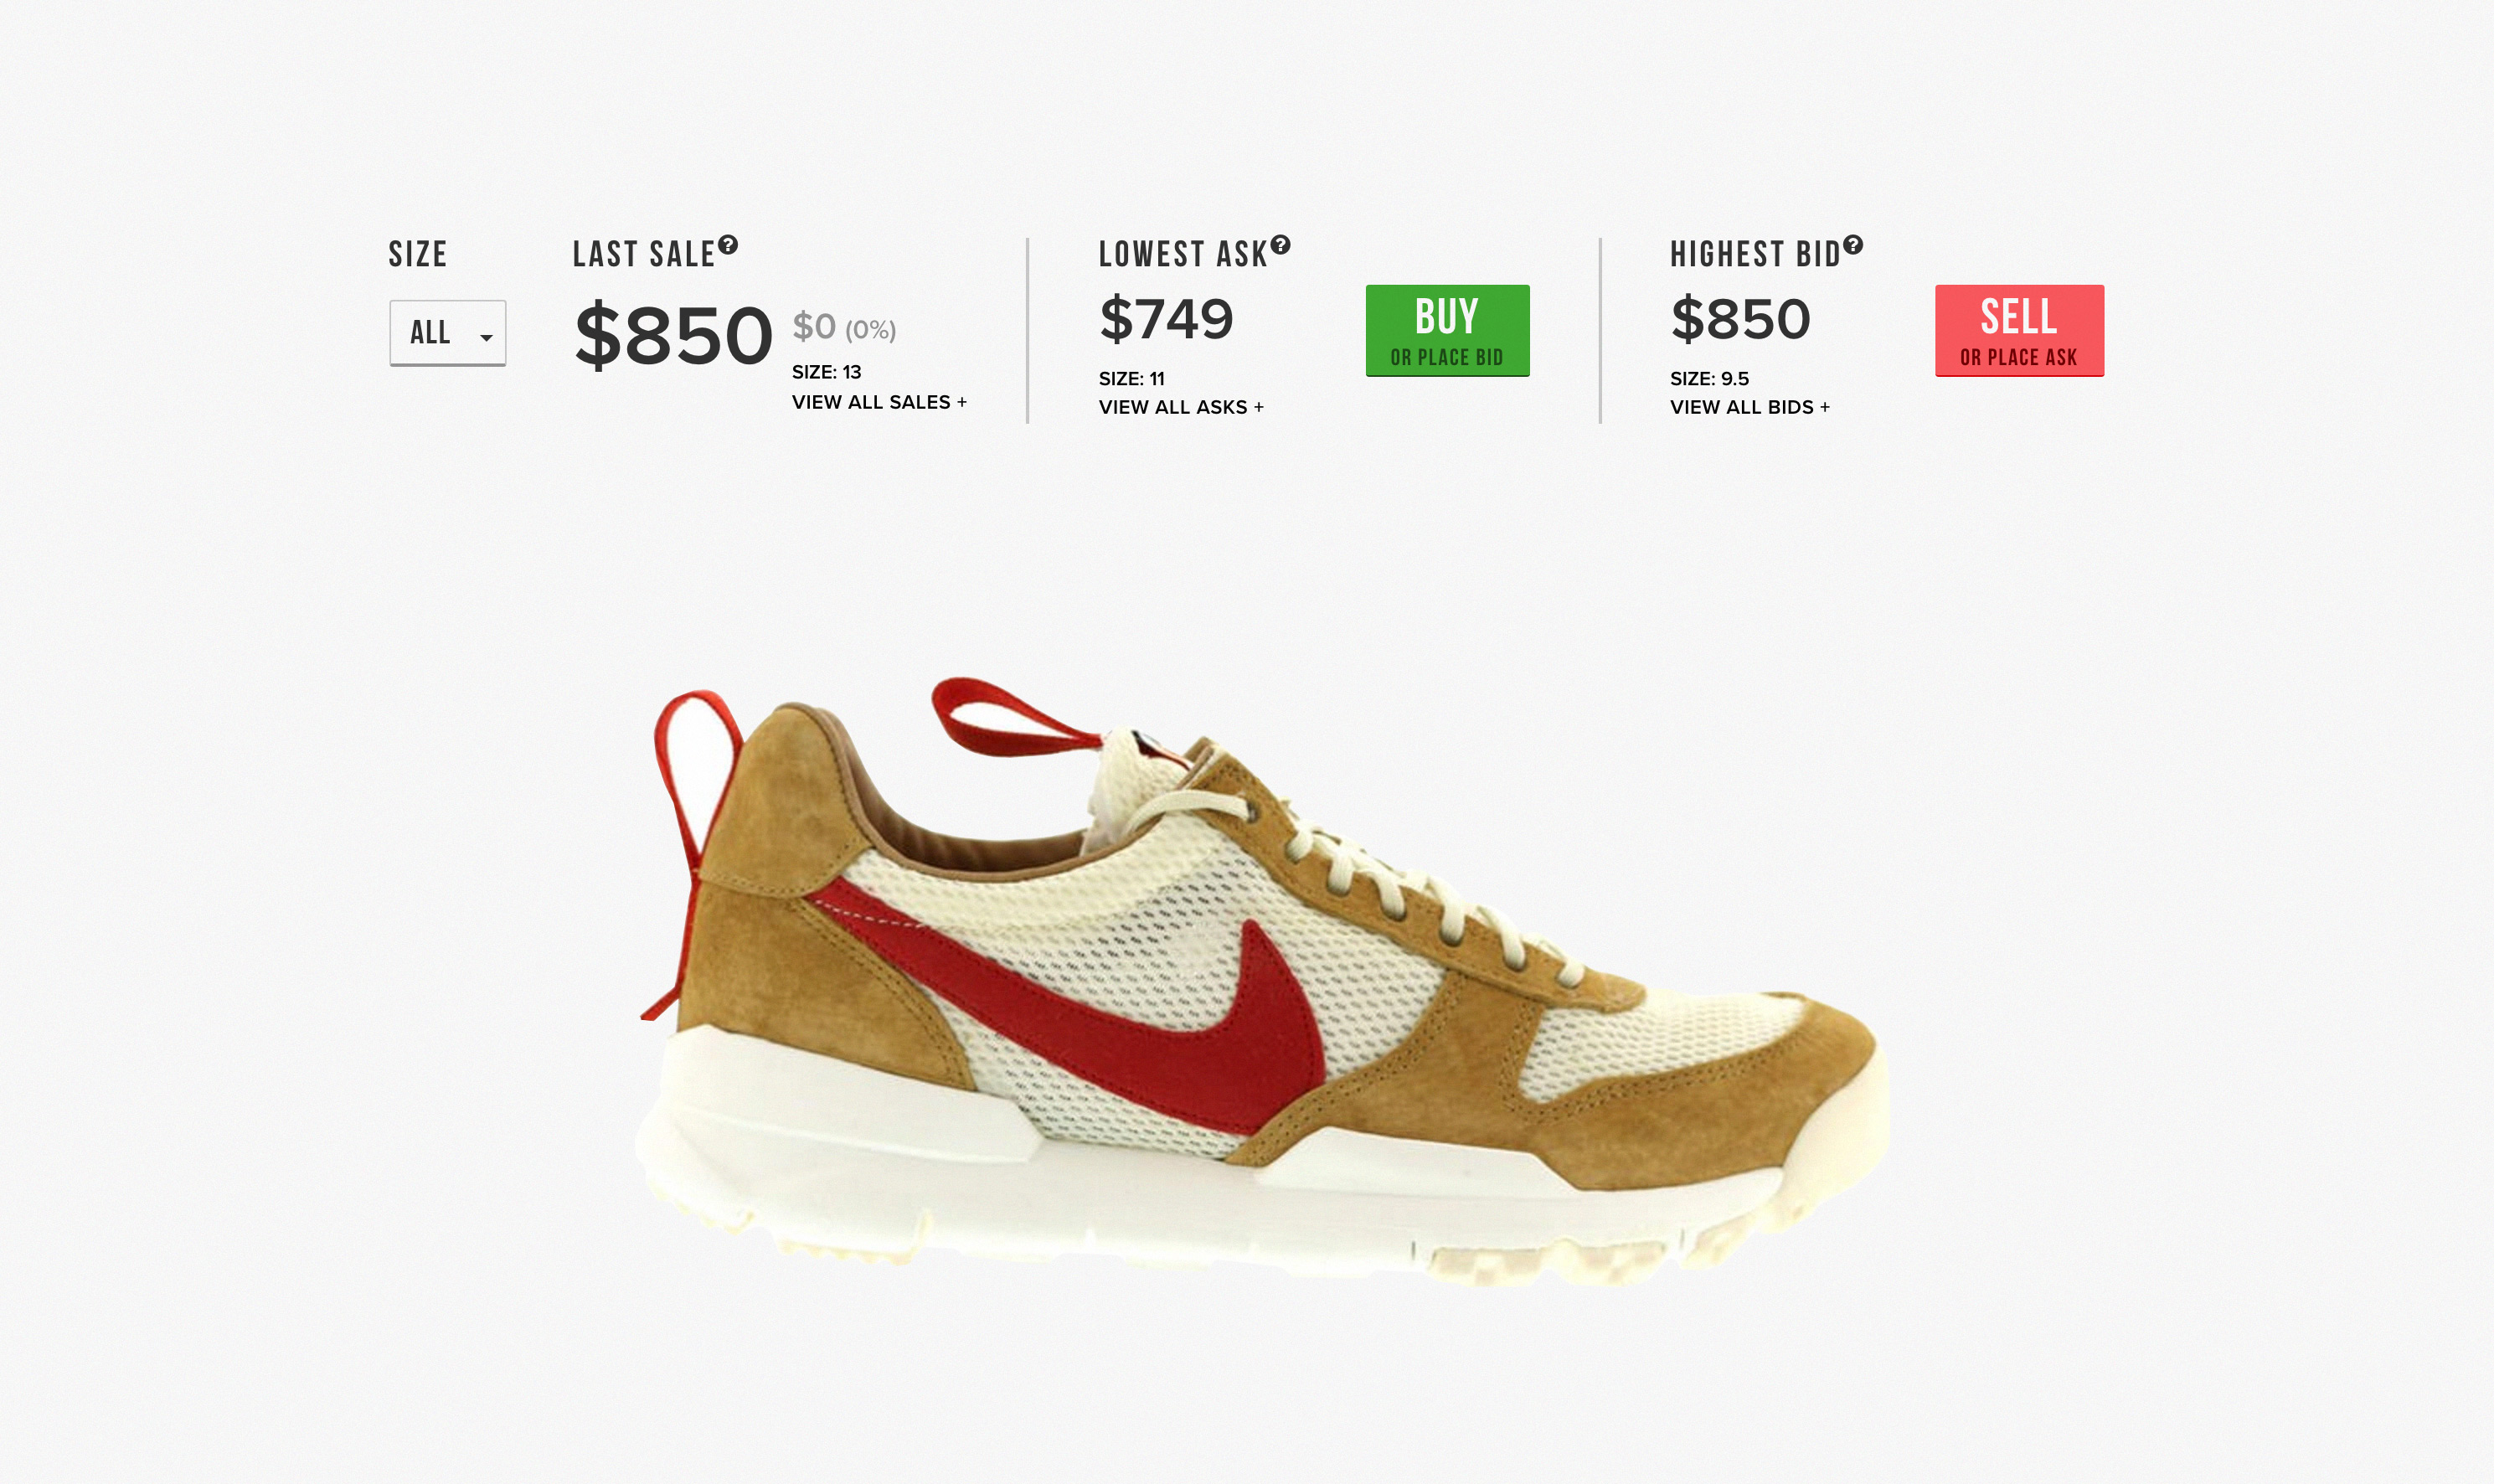 Selling Sneakers A Guide To Selling Sneakers Online - Online free invoice template authentic online sneaker stores